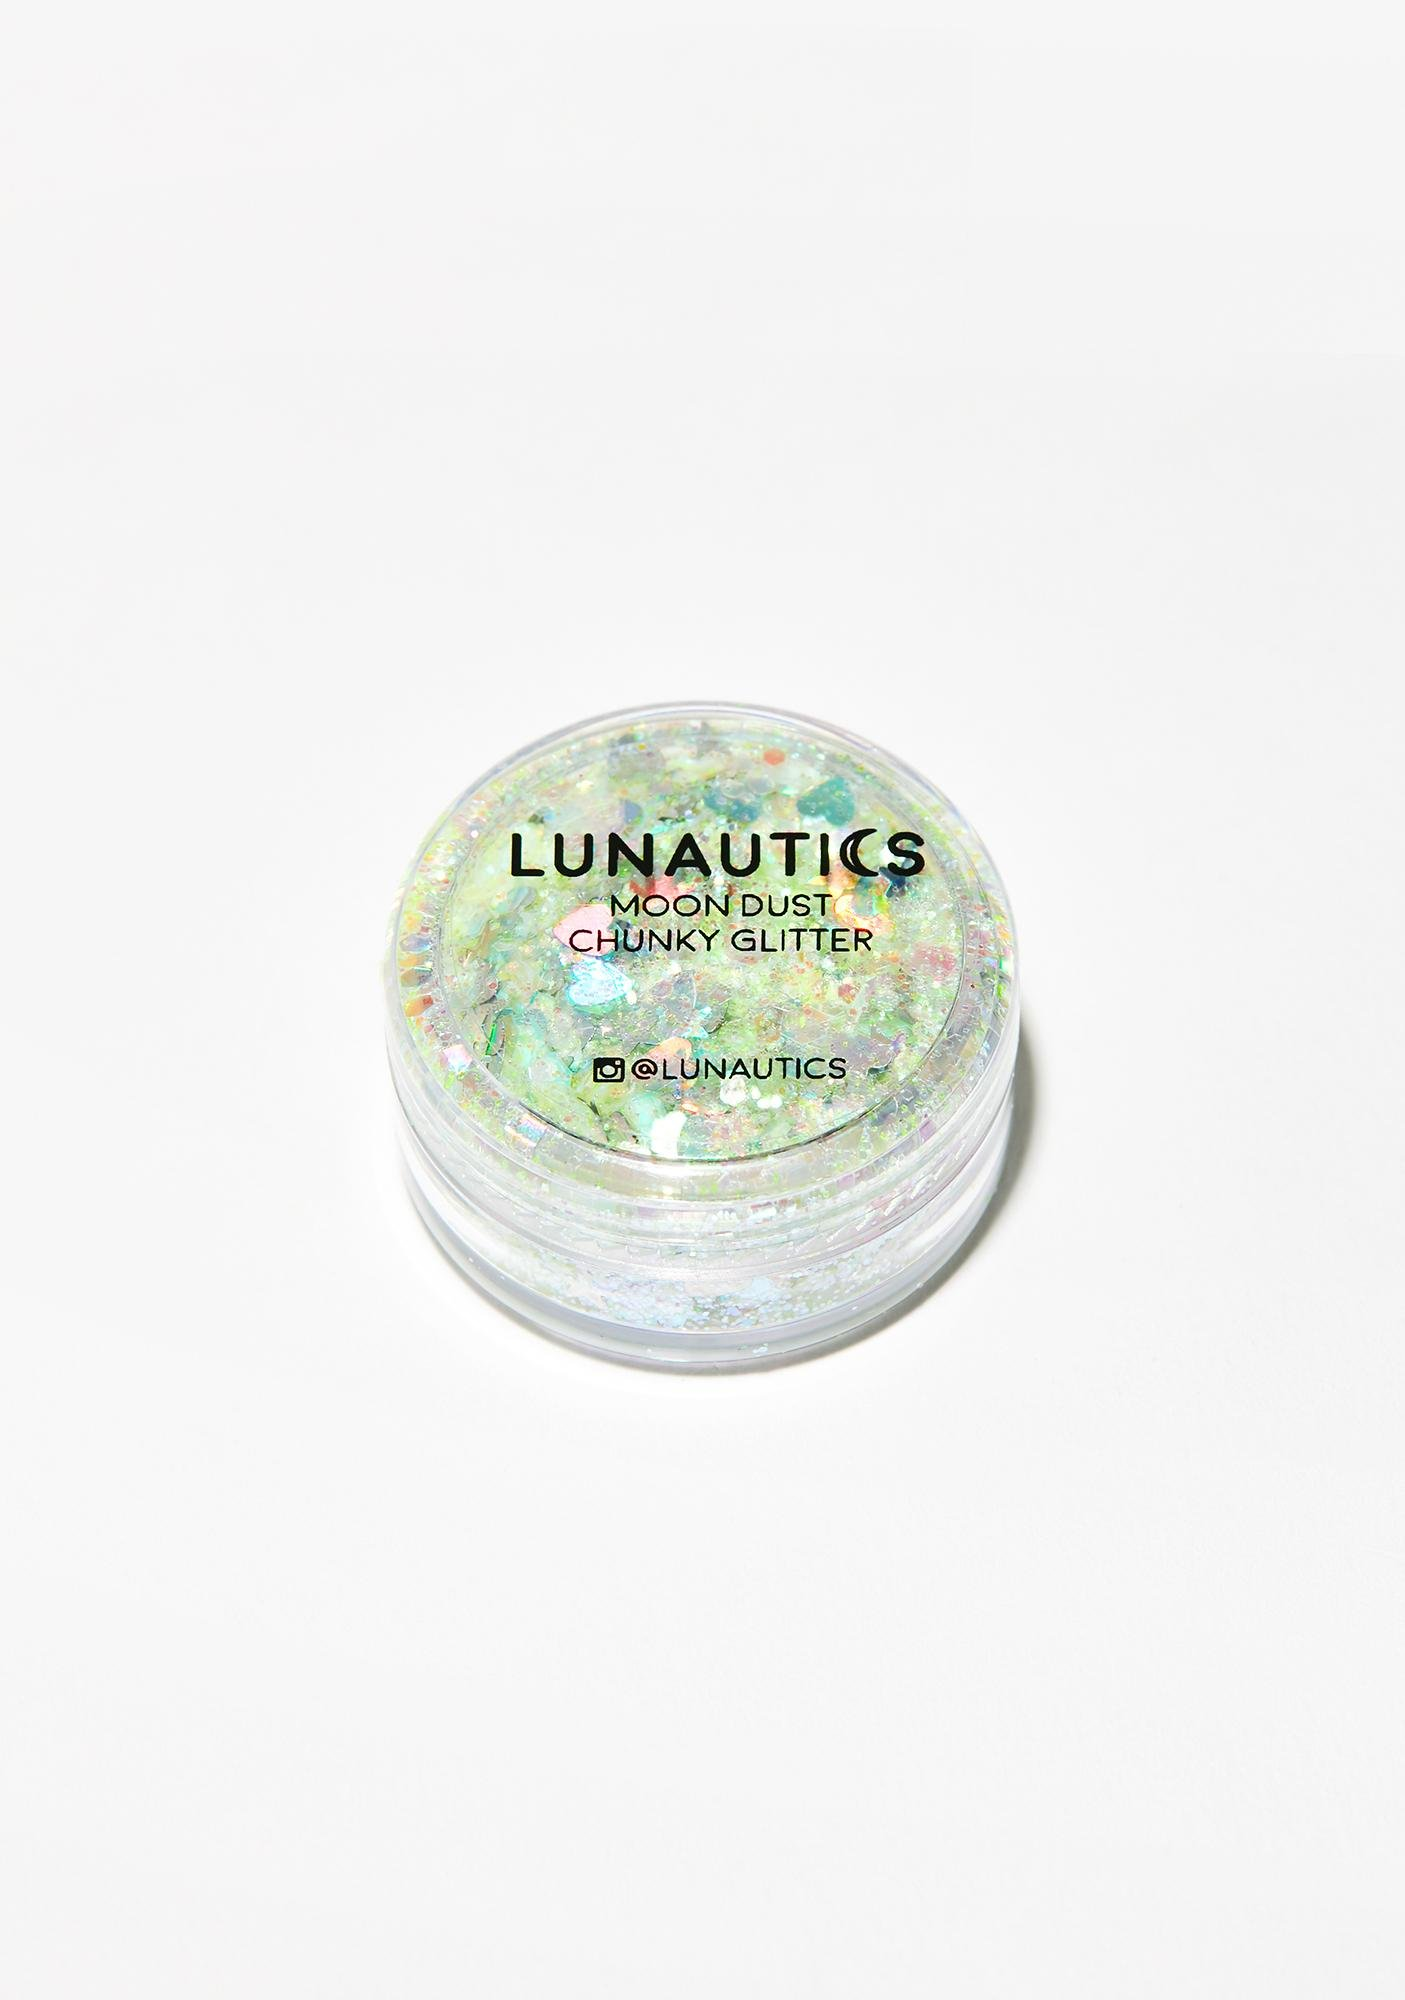 Lunautics La La Land Moon Dust Glitter